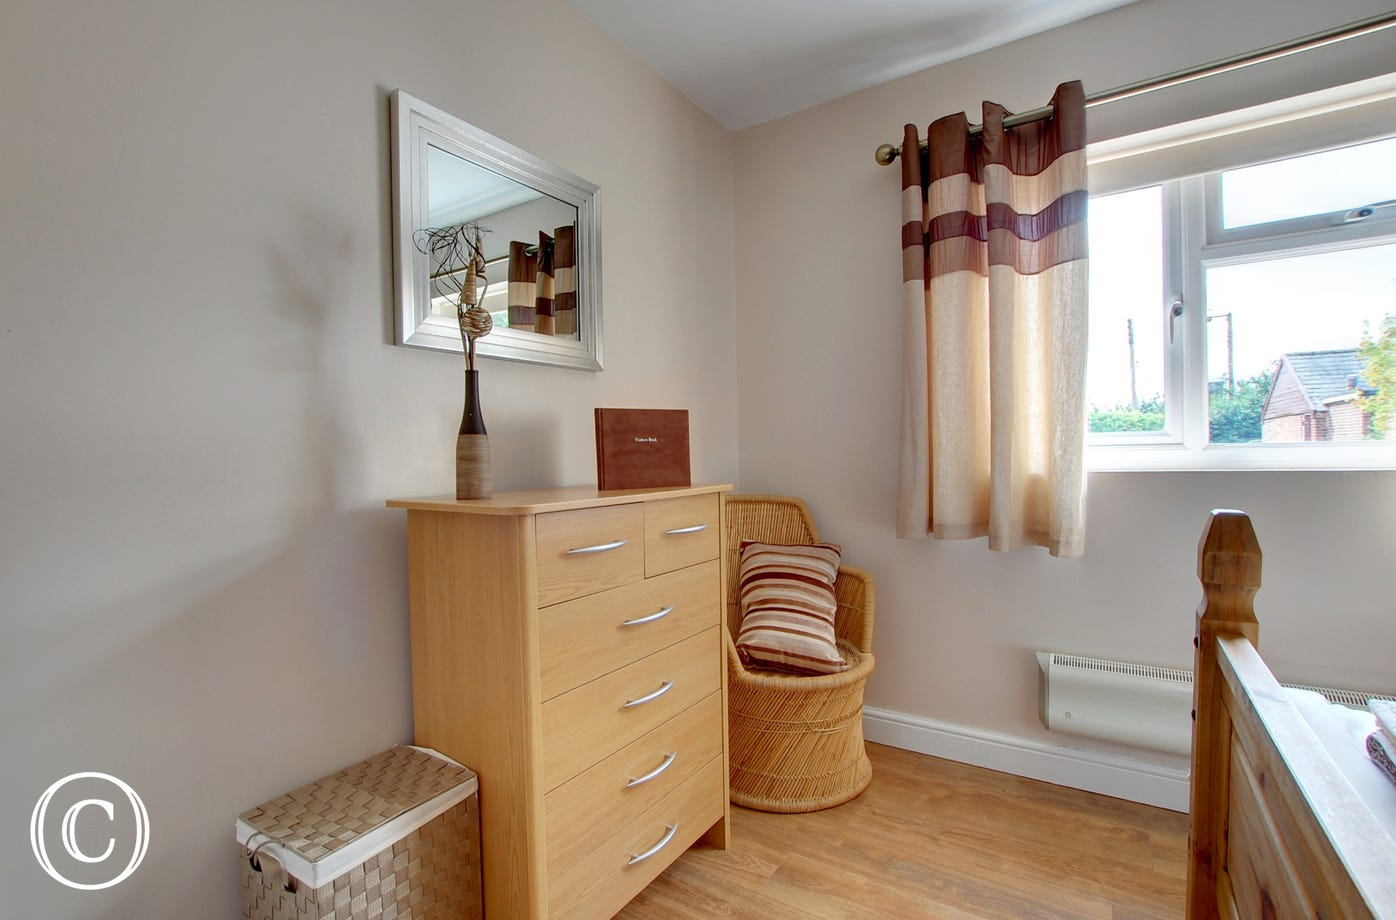 Tall chest of drawers with mirror above, wicker chair positioned in corner of room.